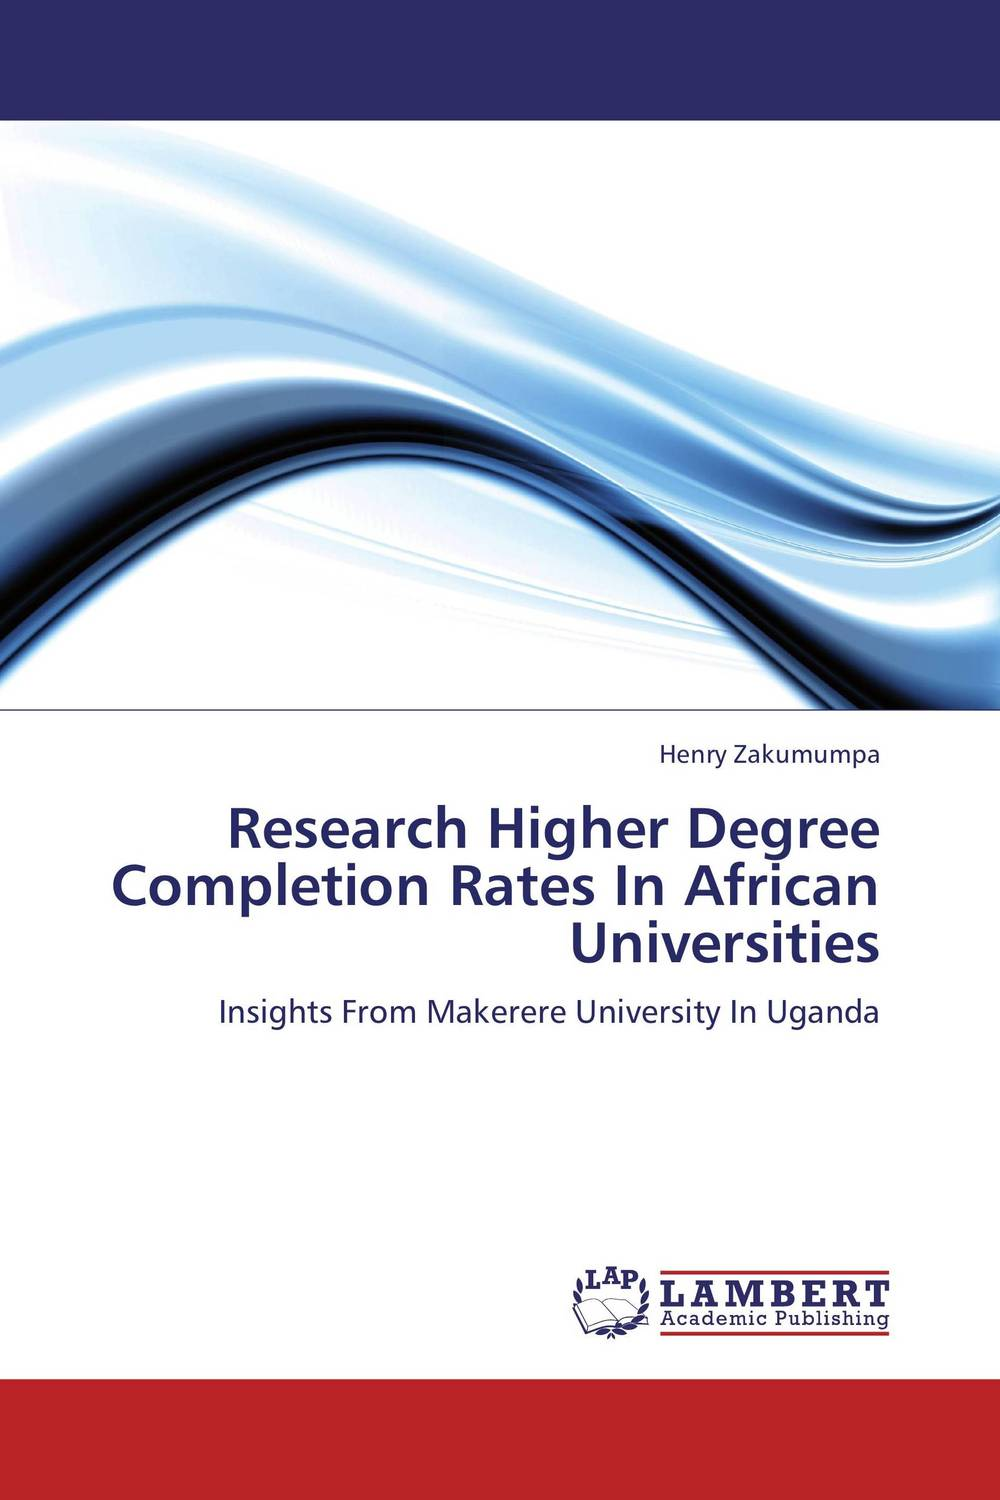 Research Higher Degree Completion Rates In African Universities